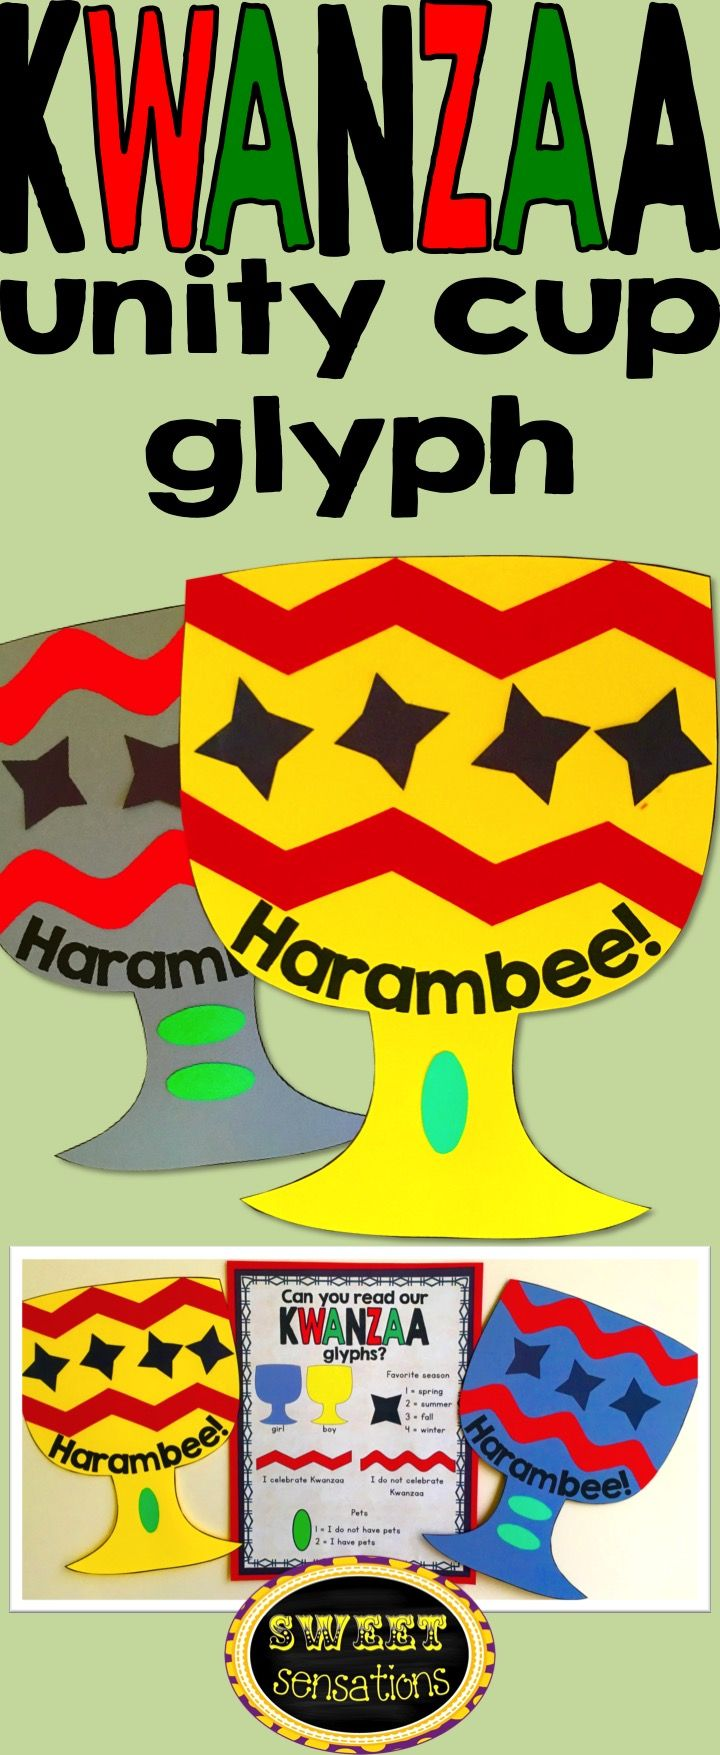 Kwanzaa simple unity cup craft or glyph for pre-school, kindergarten, first and second grade.